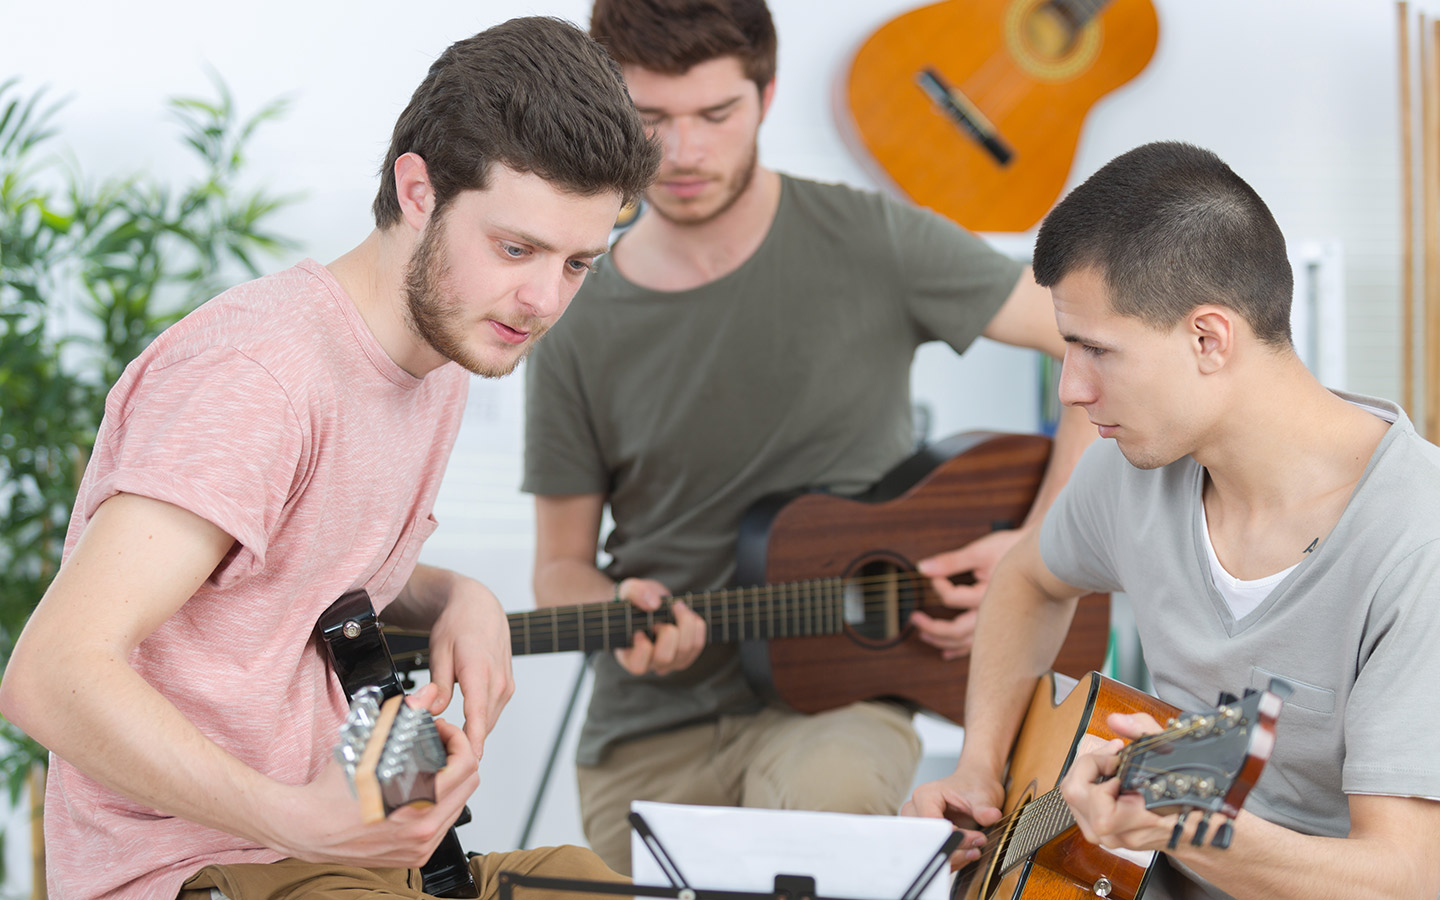 Students are learning to play guitar in a music school